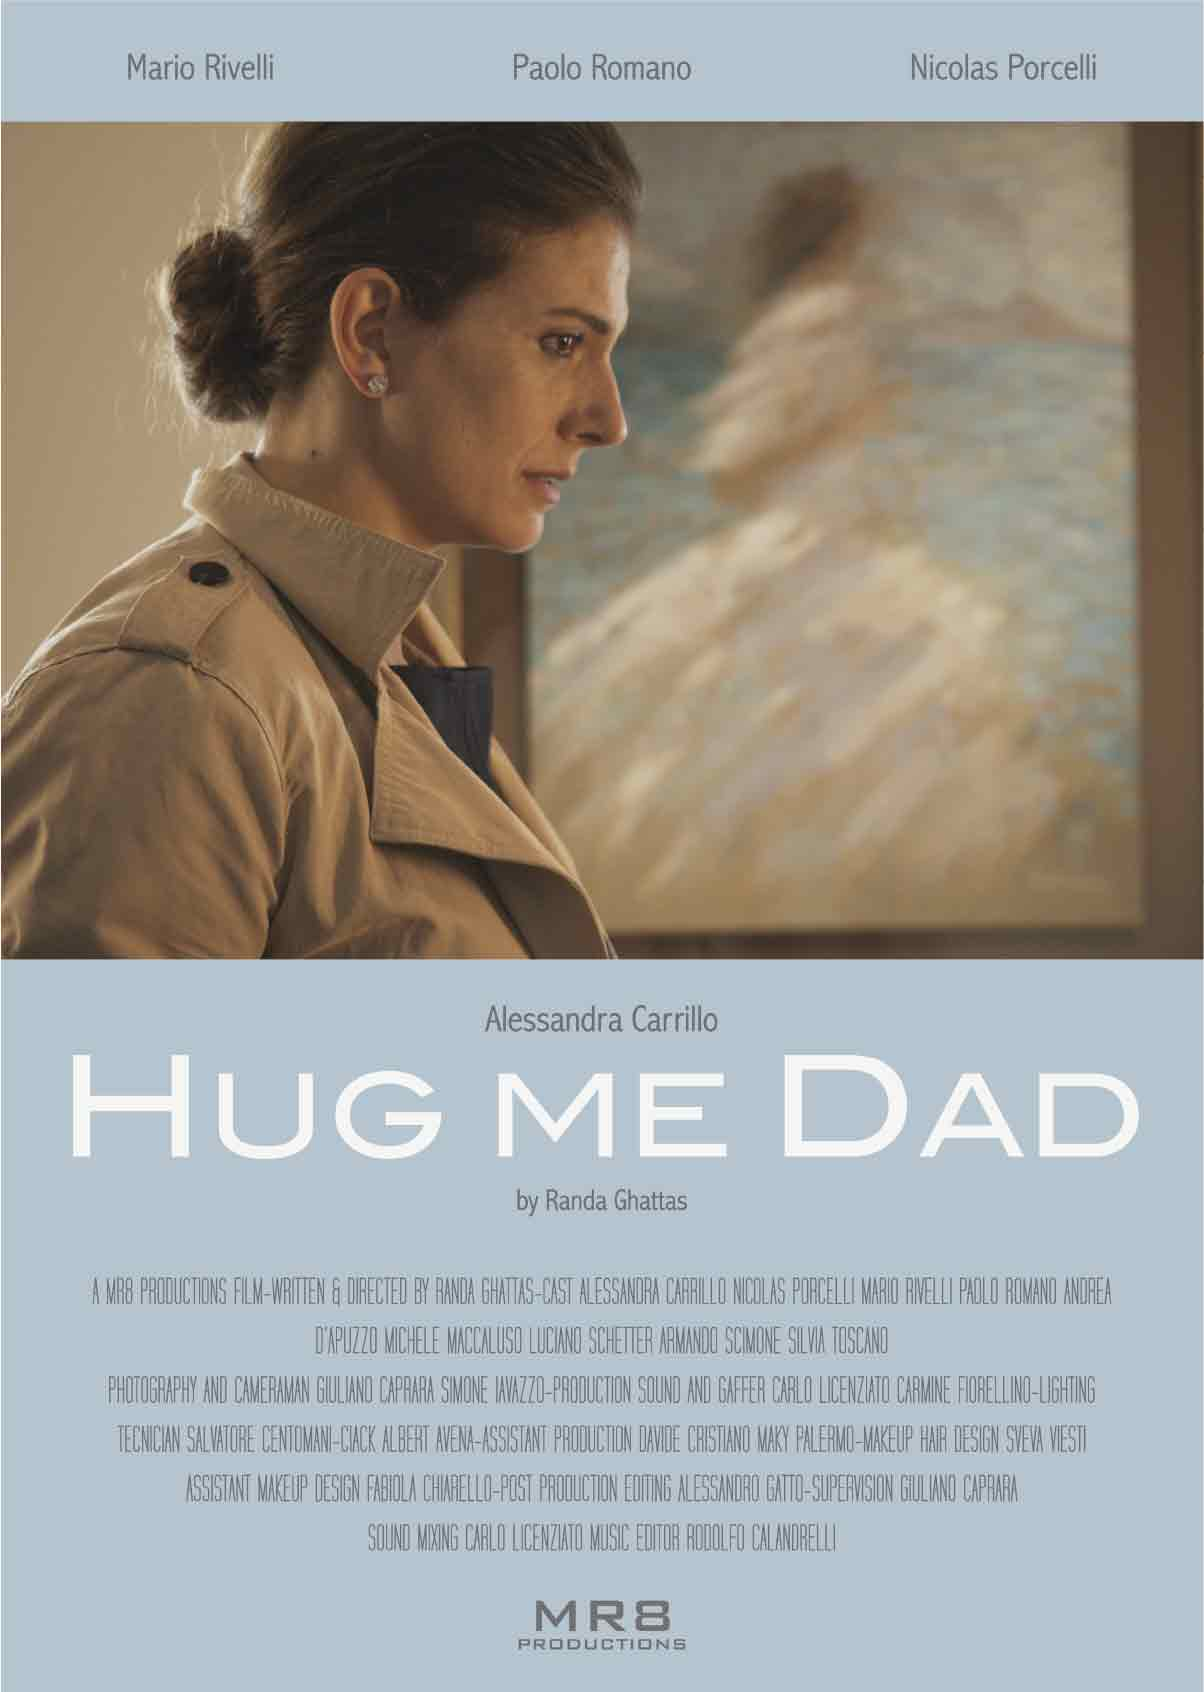 Hug me dad poster MR8 Productions